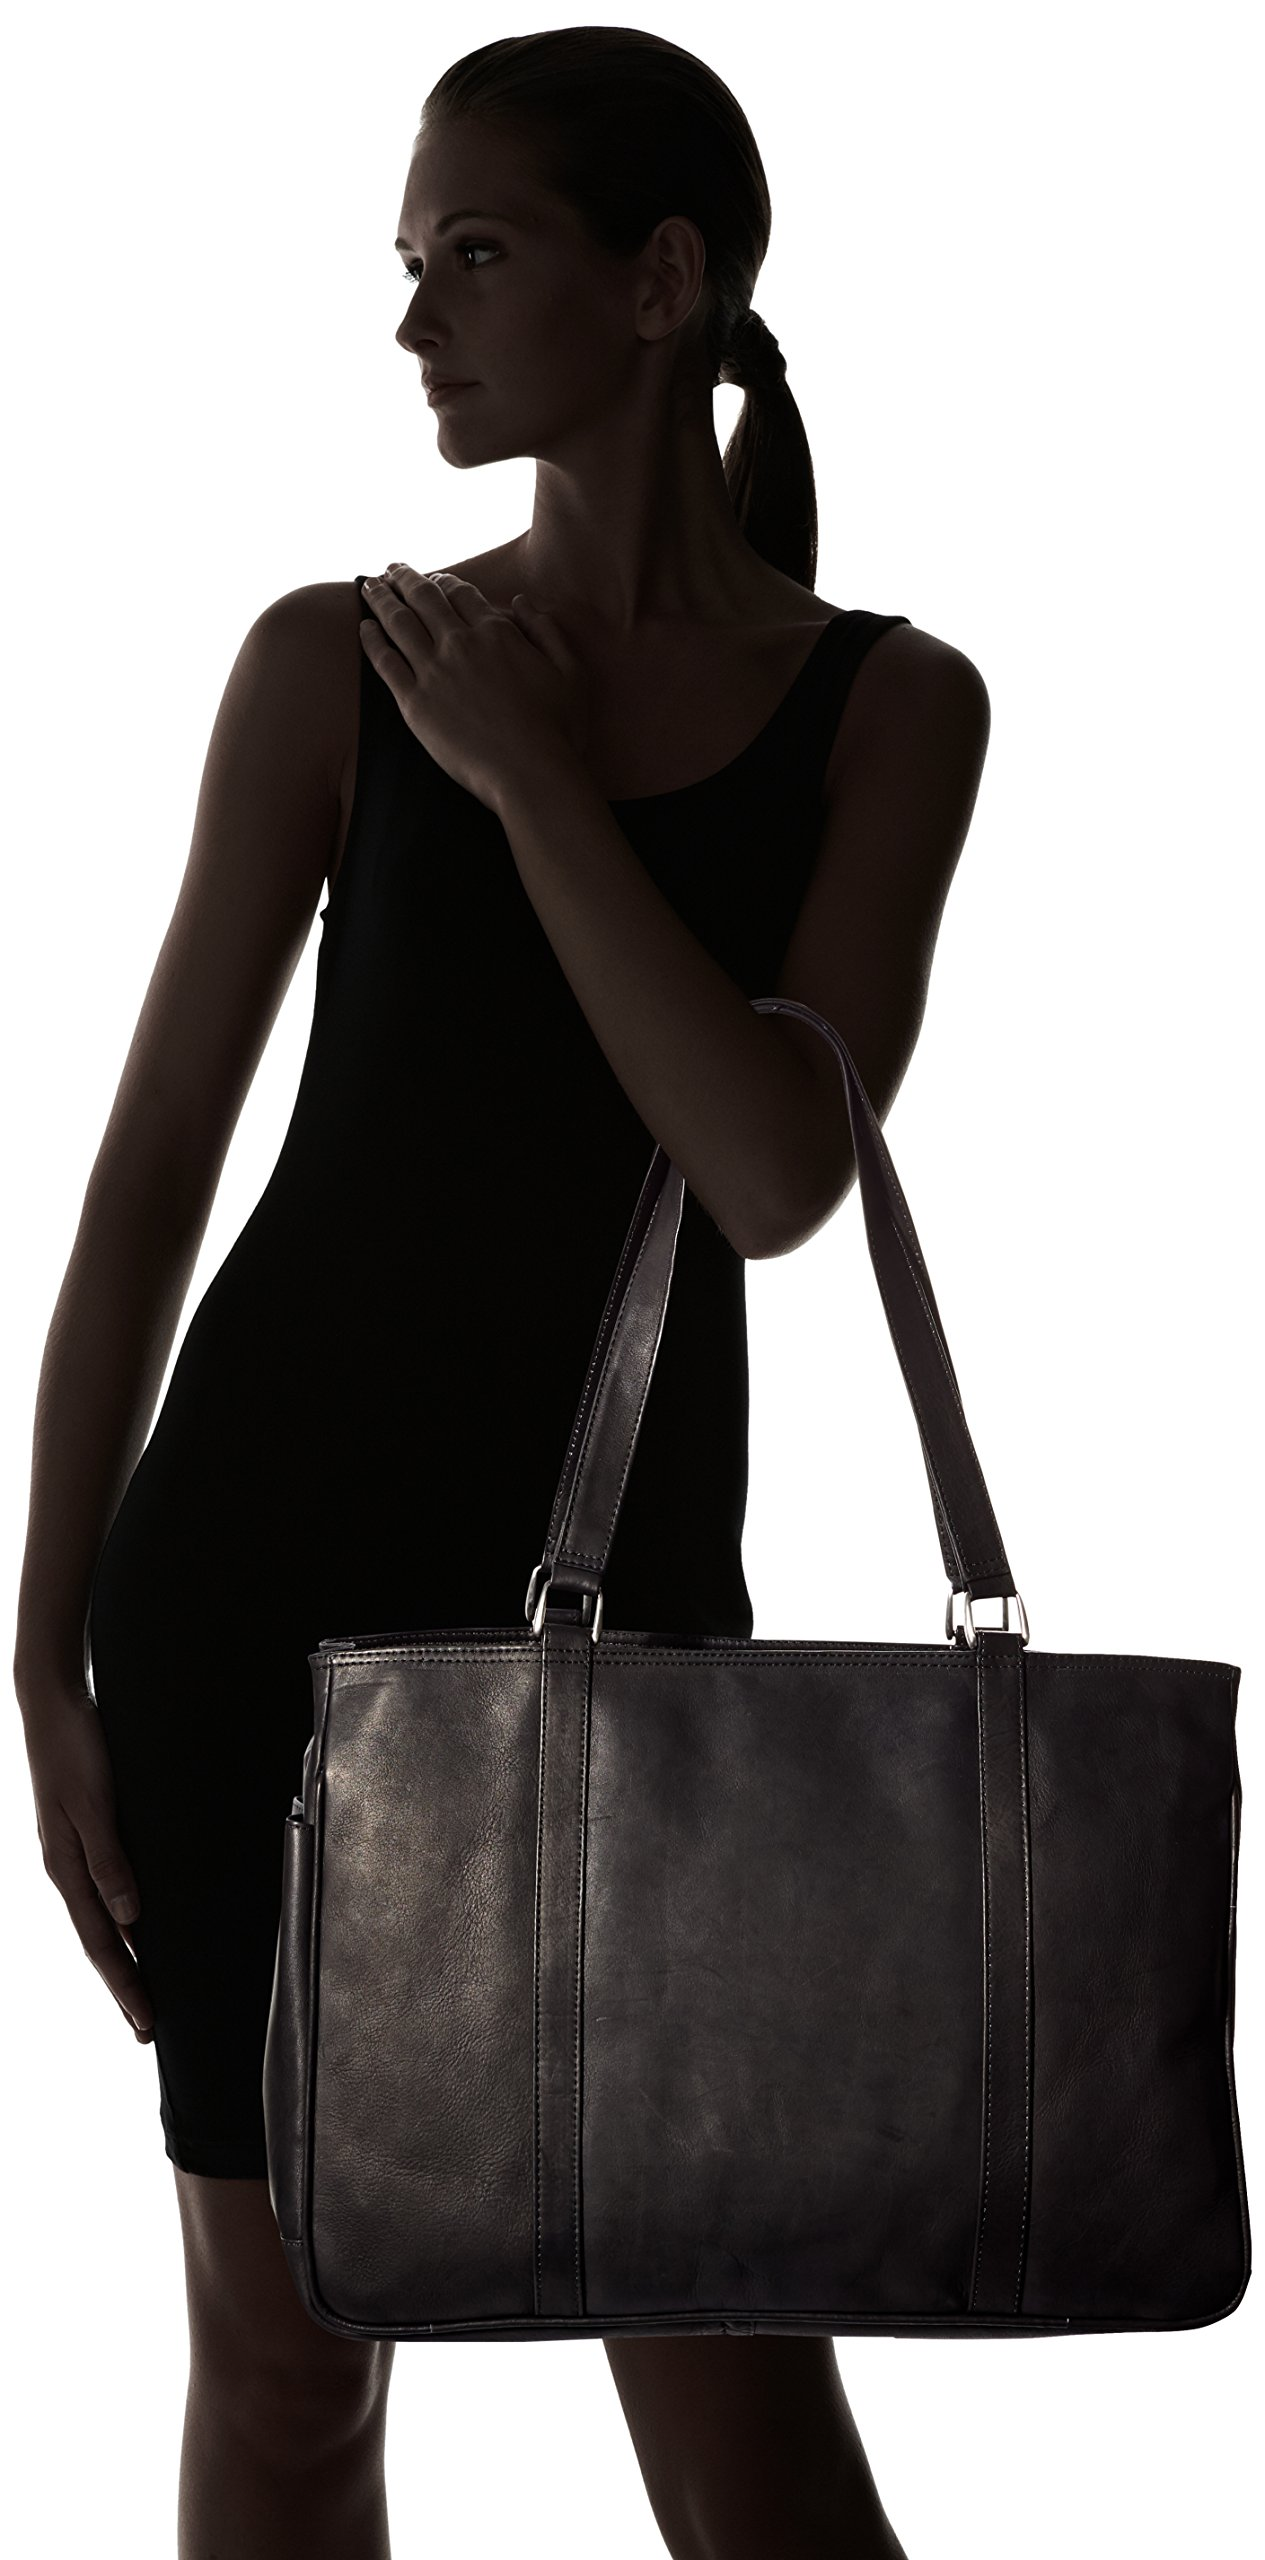 Piel Leather Large Shopping Bag, Black, One Size by Piel Leather (Image #6)